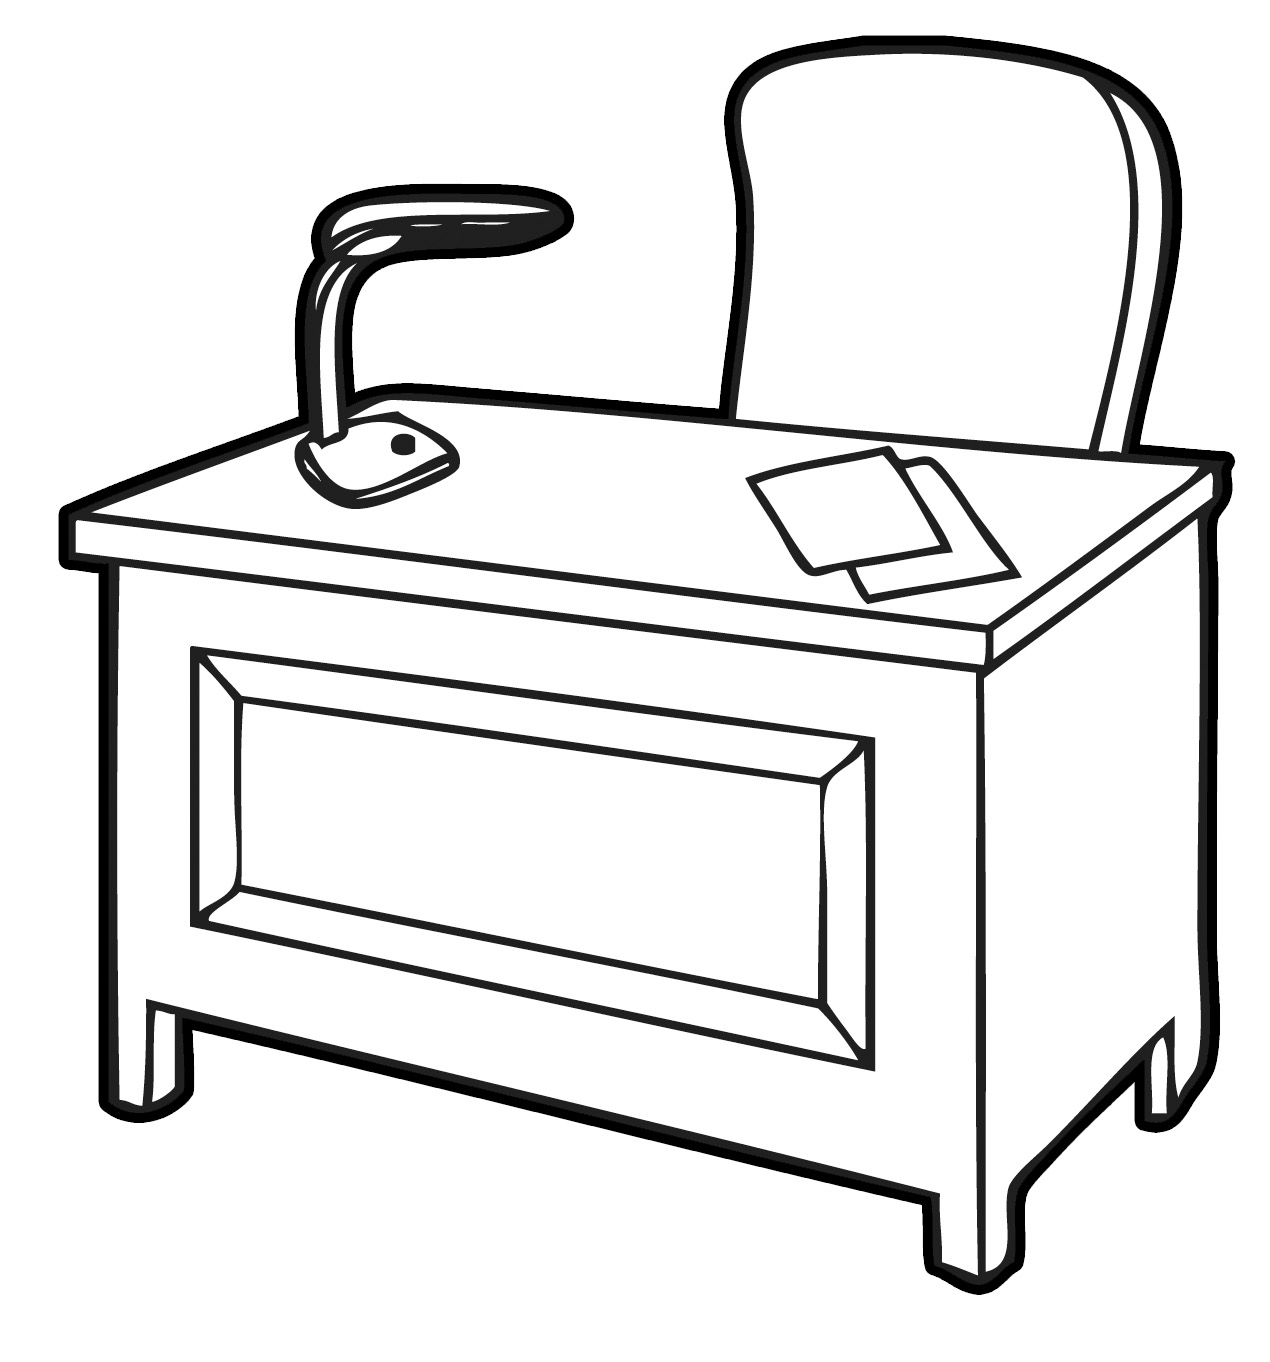 Free office desk clipart. Table black and white